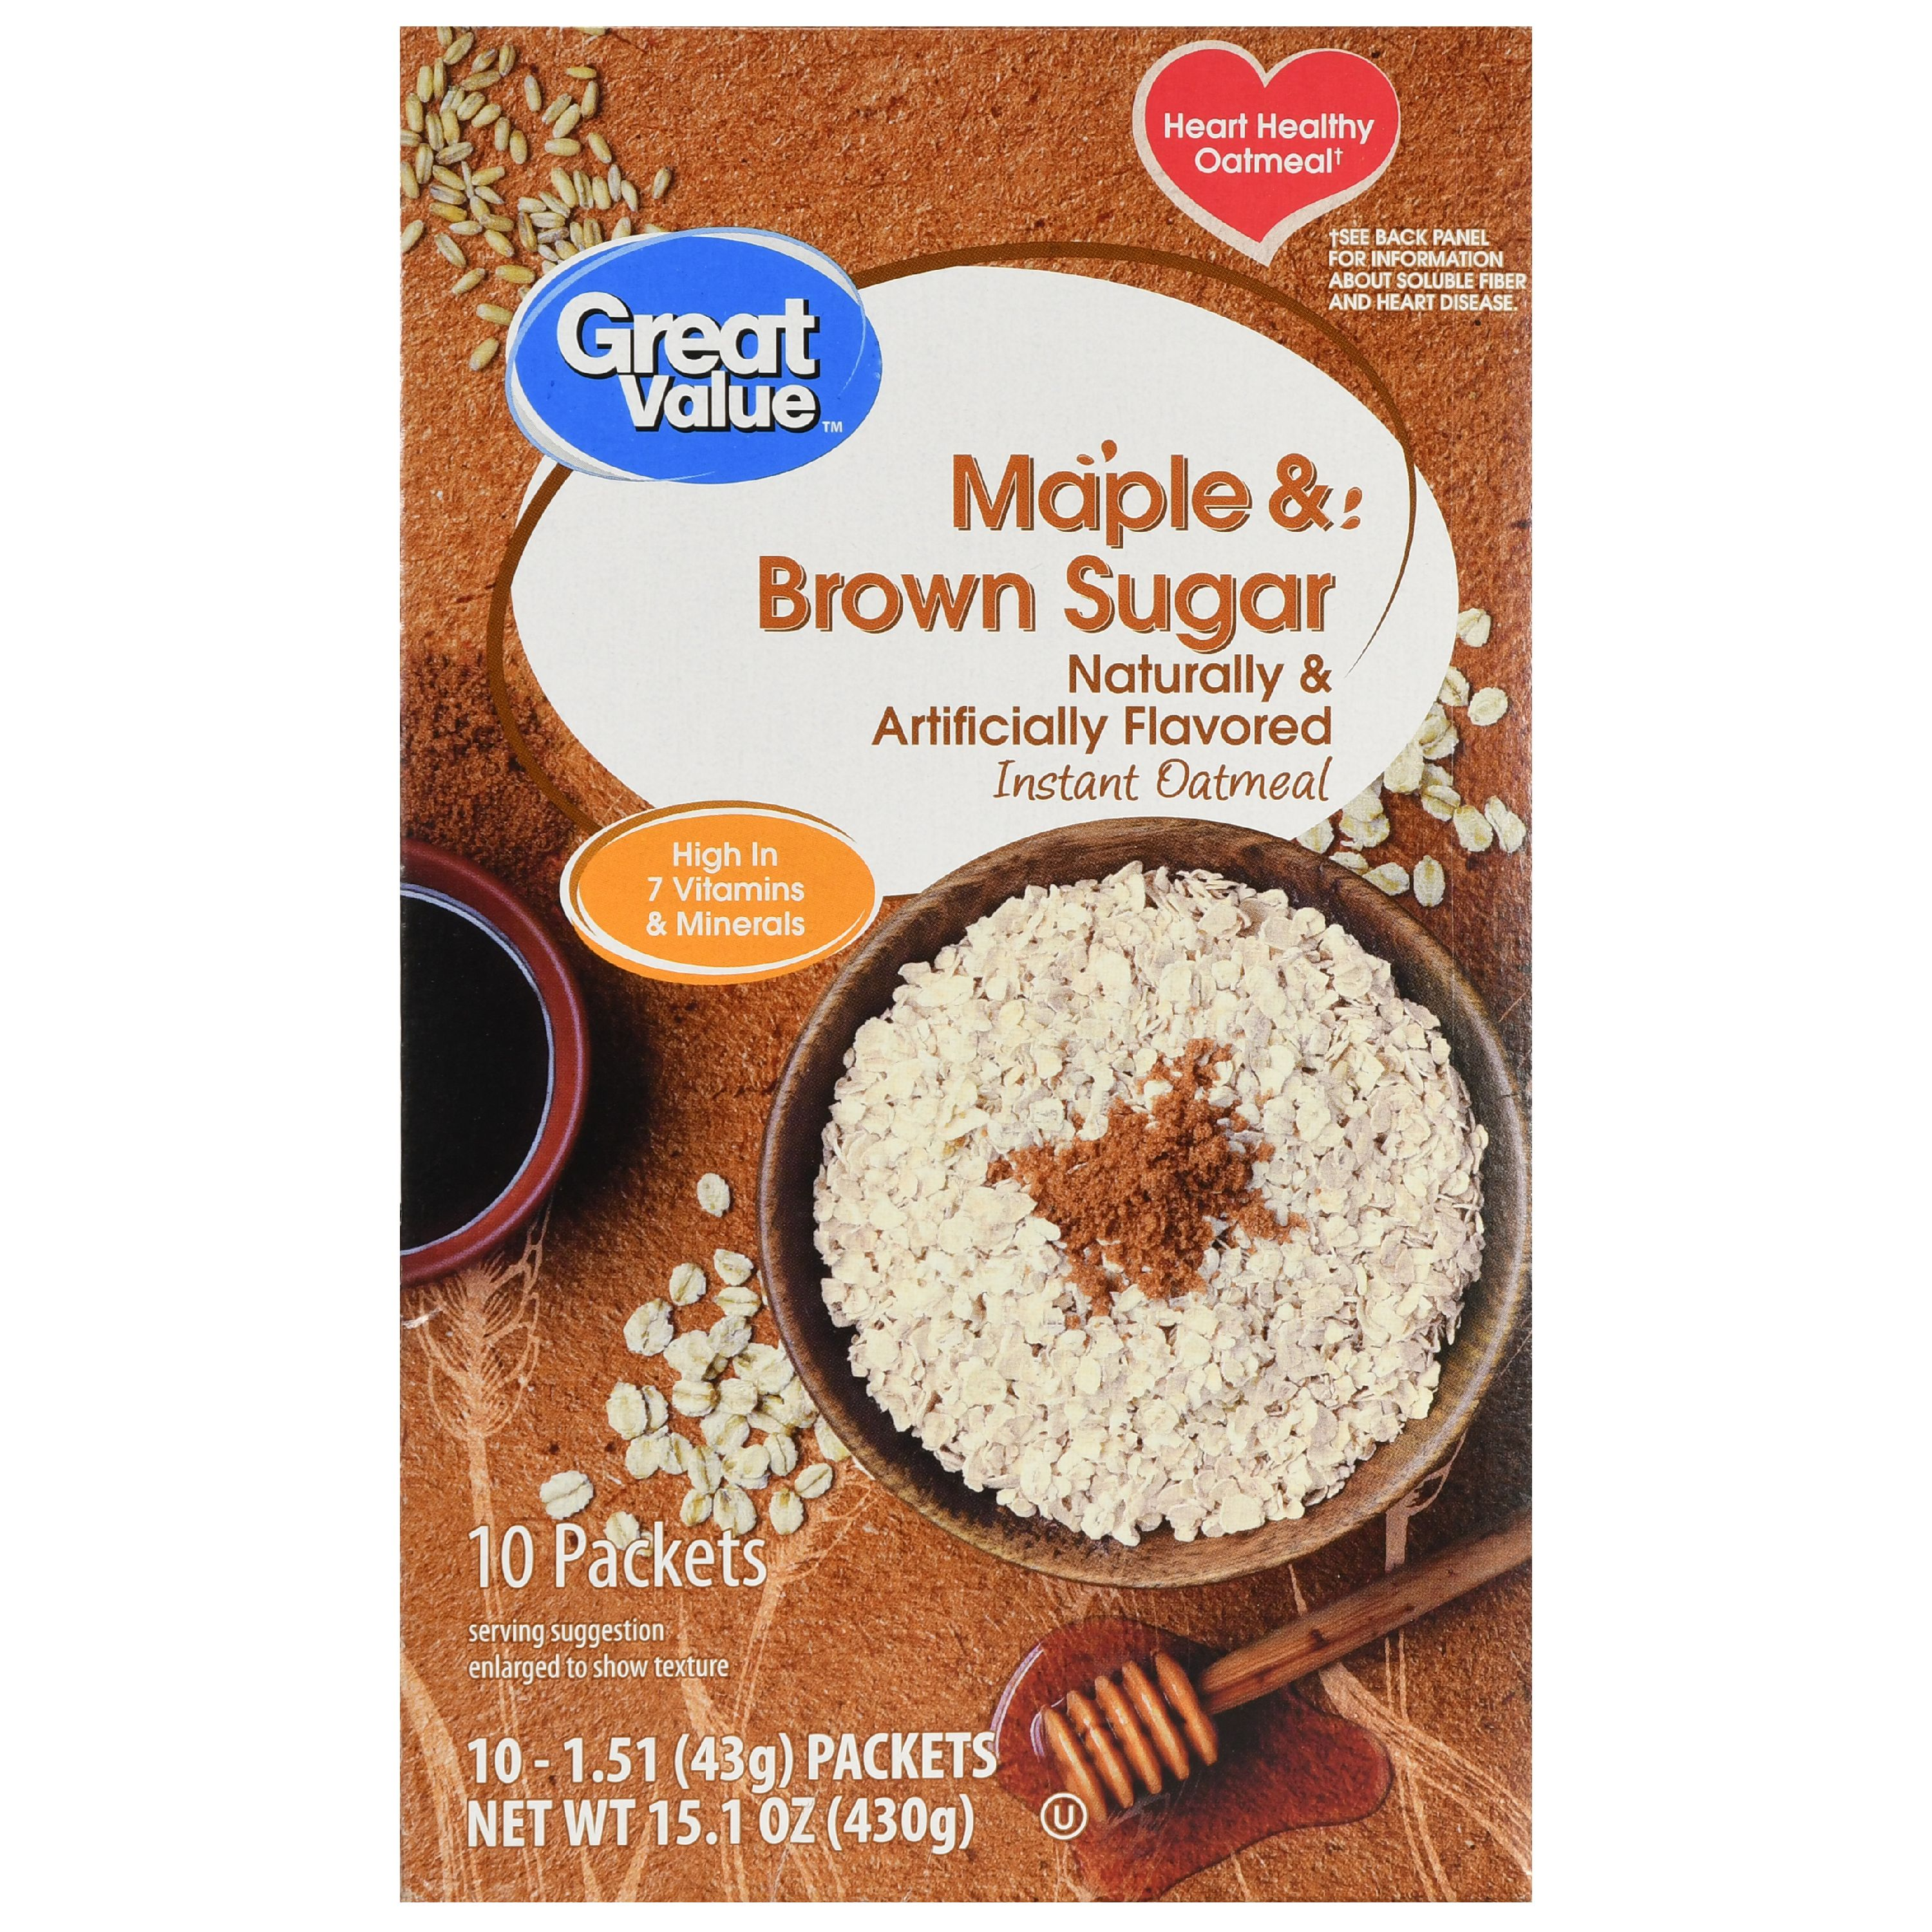 Great Value Instant Oatmeal, Maple & Brown Sugar, 1.51 Oz, 10 Ct